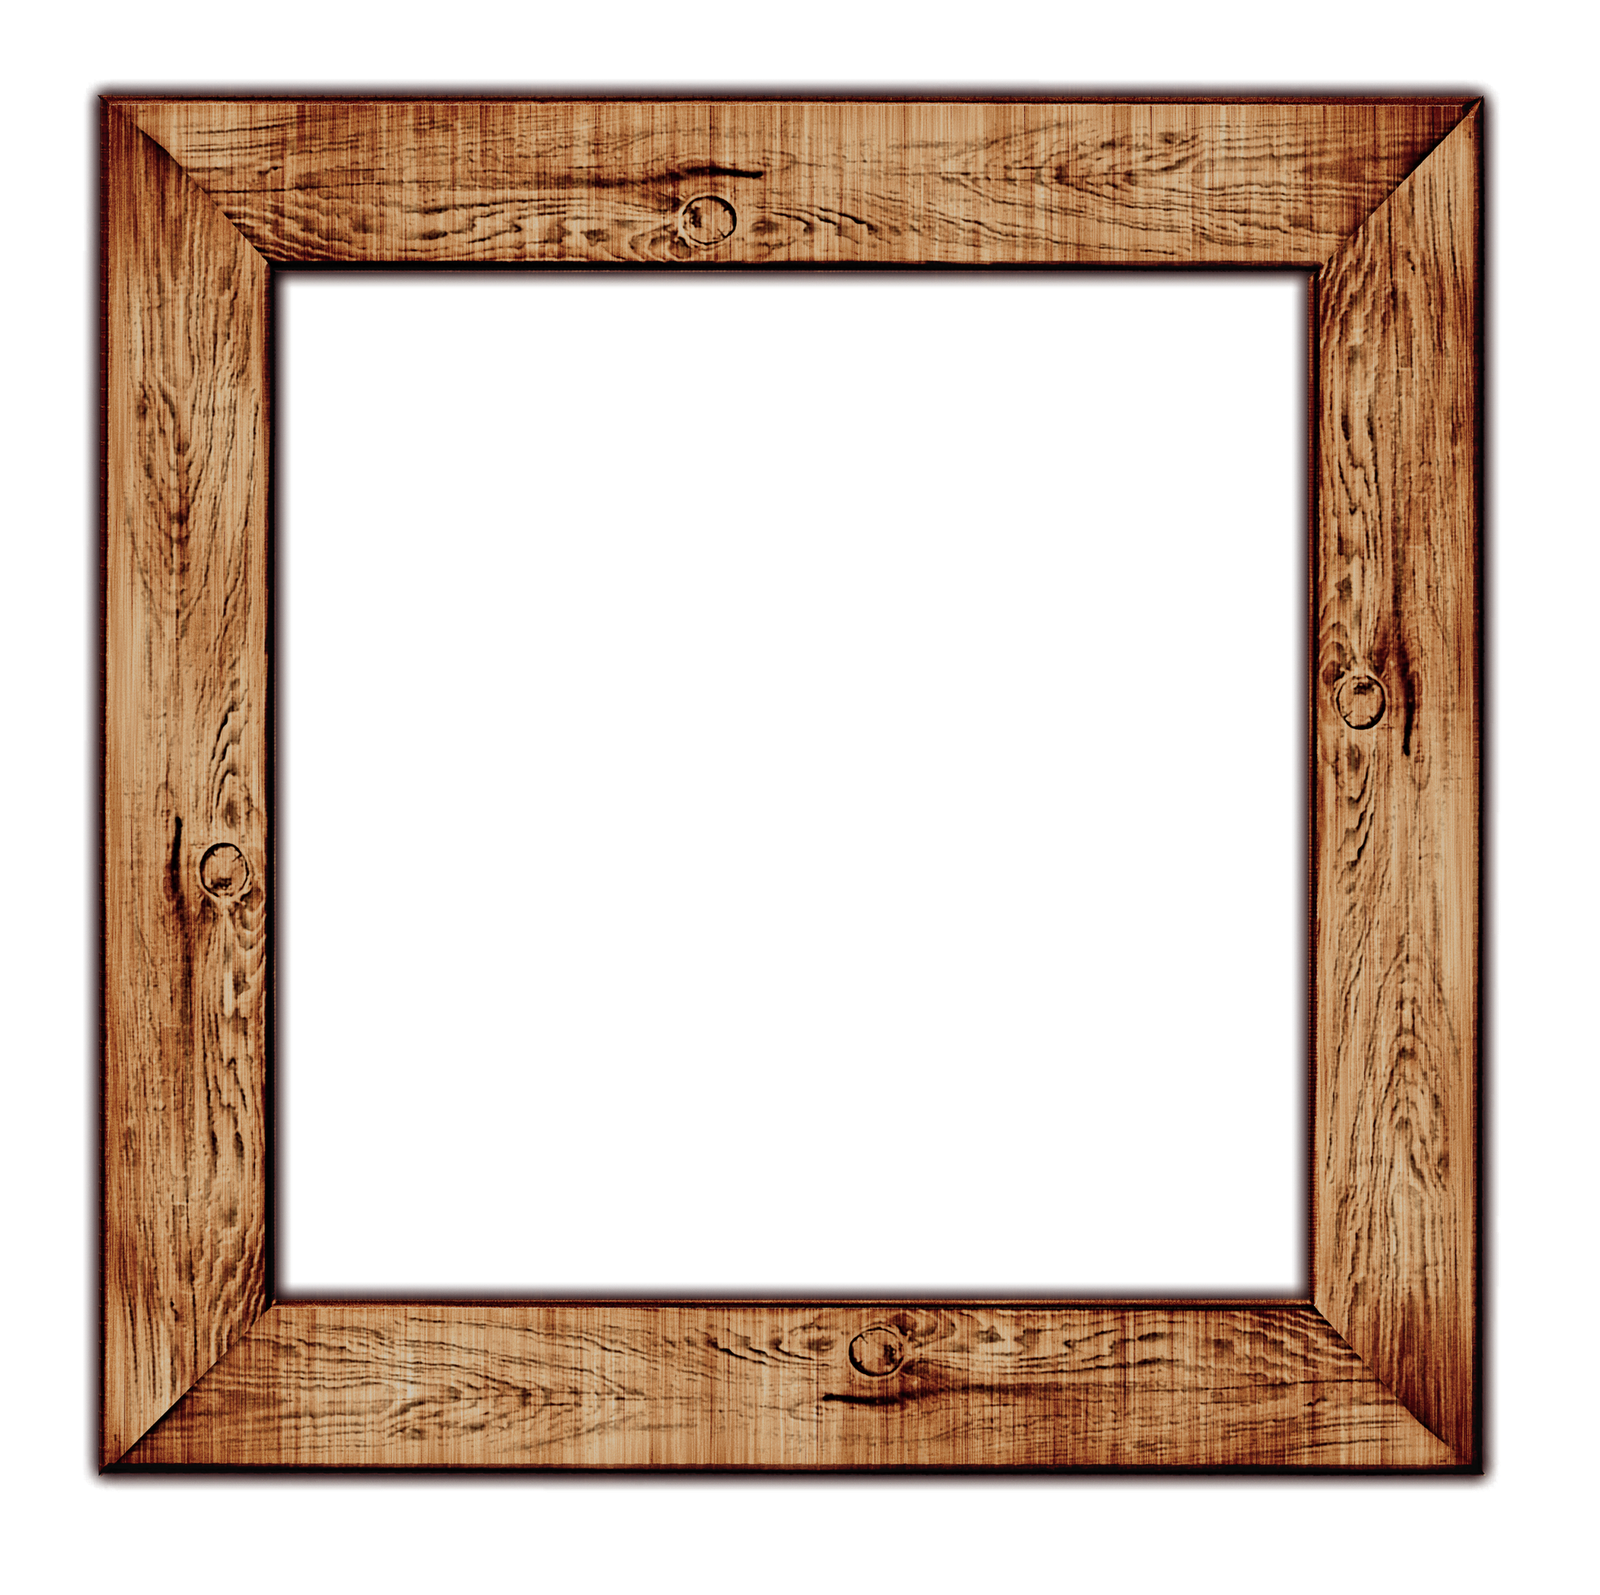 Wood Frame Design Png The Image Kid Has It